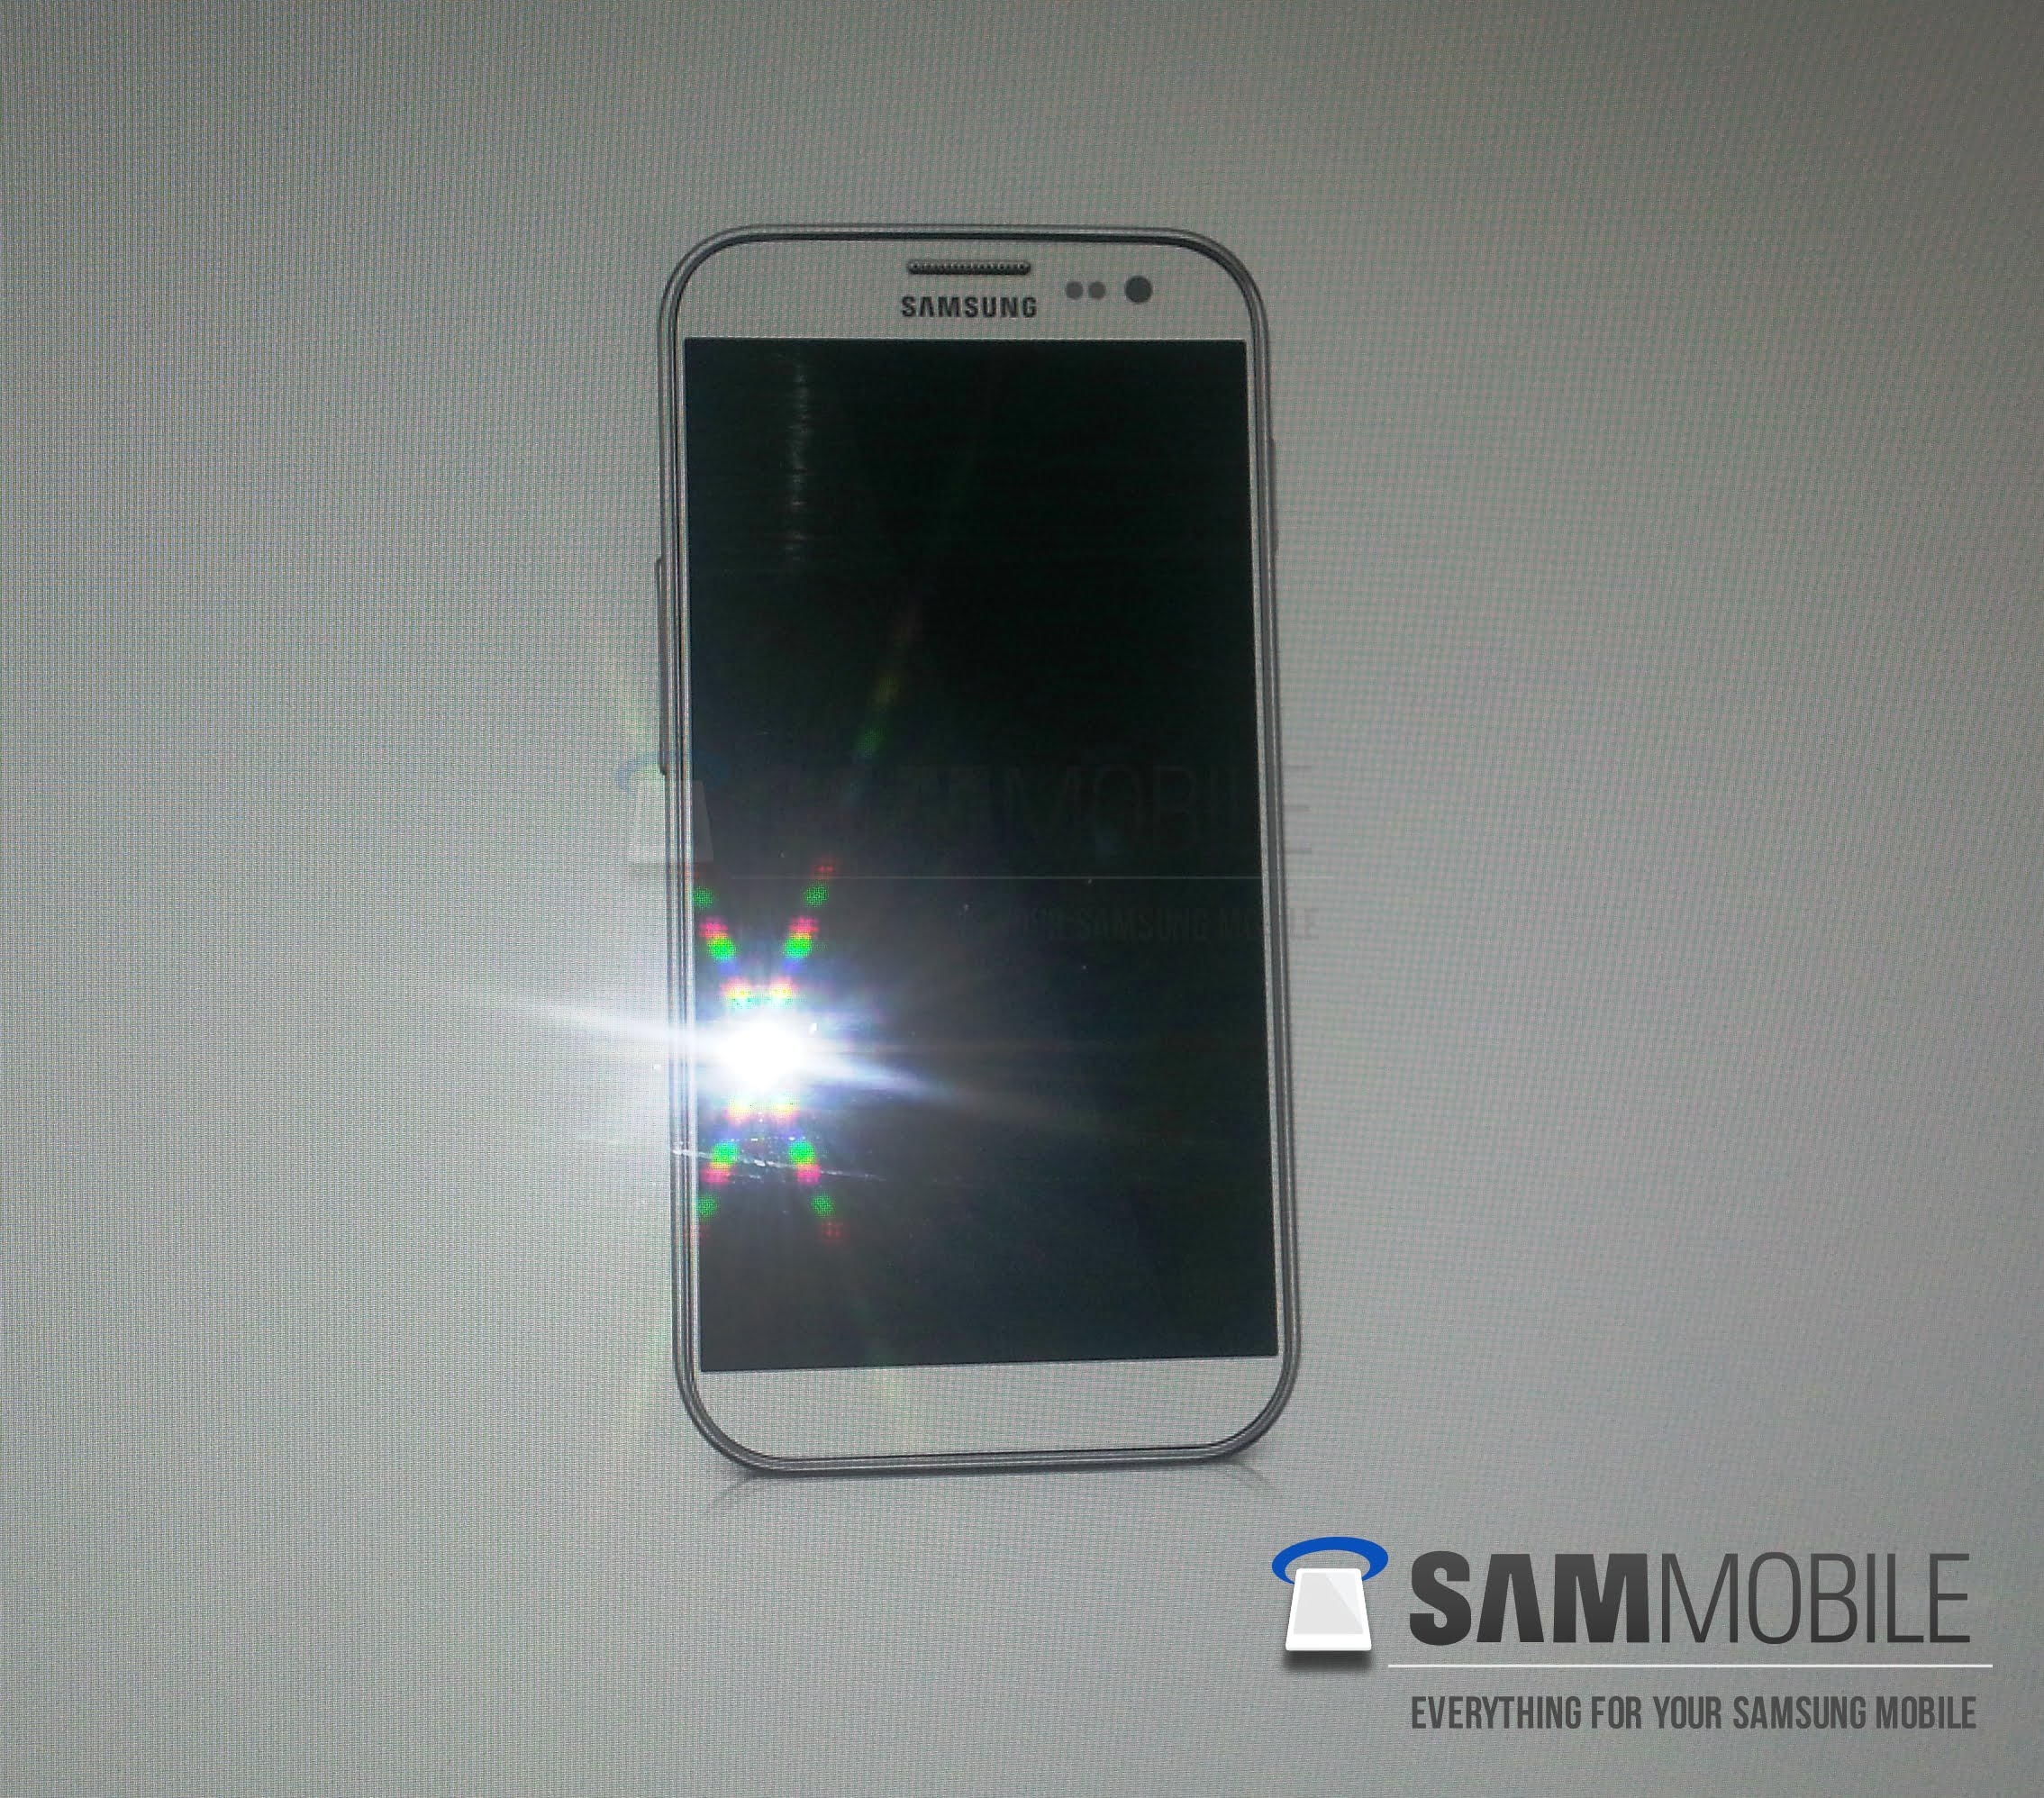 imagine prototip Samsung Galaxy S IV